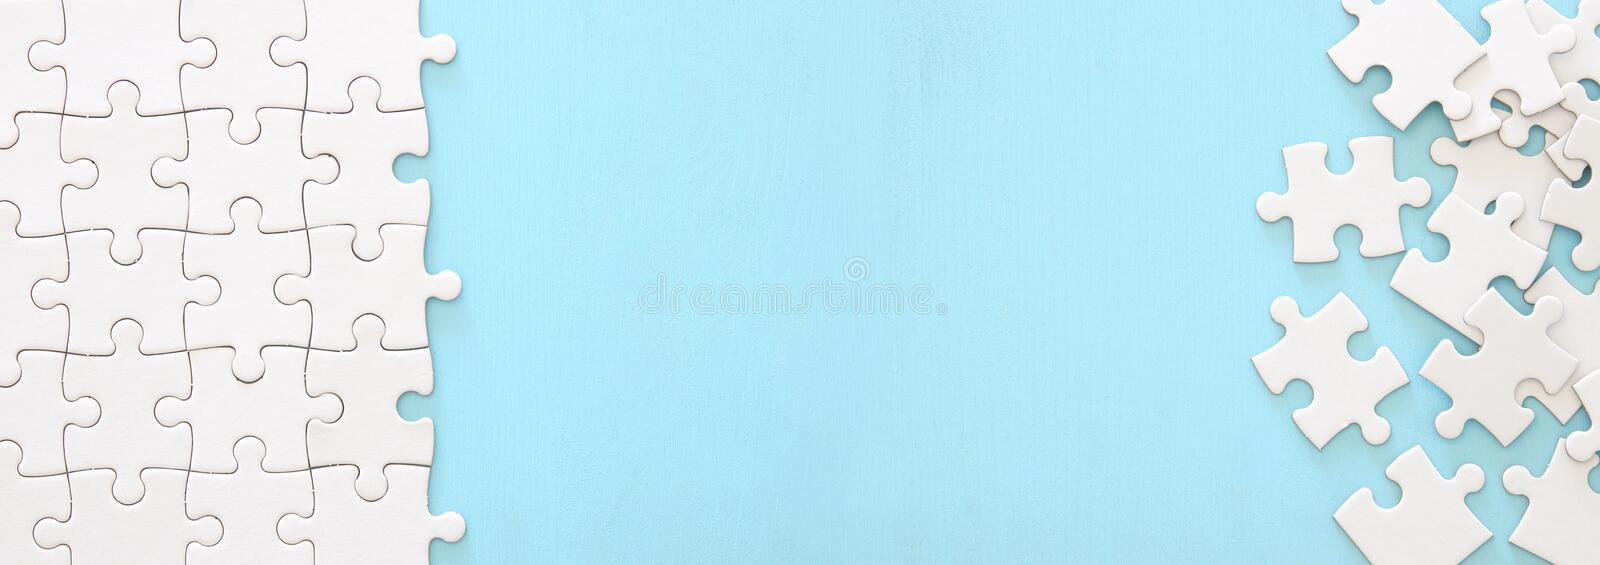 background of white puzzle with missing piece. Banner. royalty free stock photography